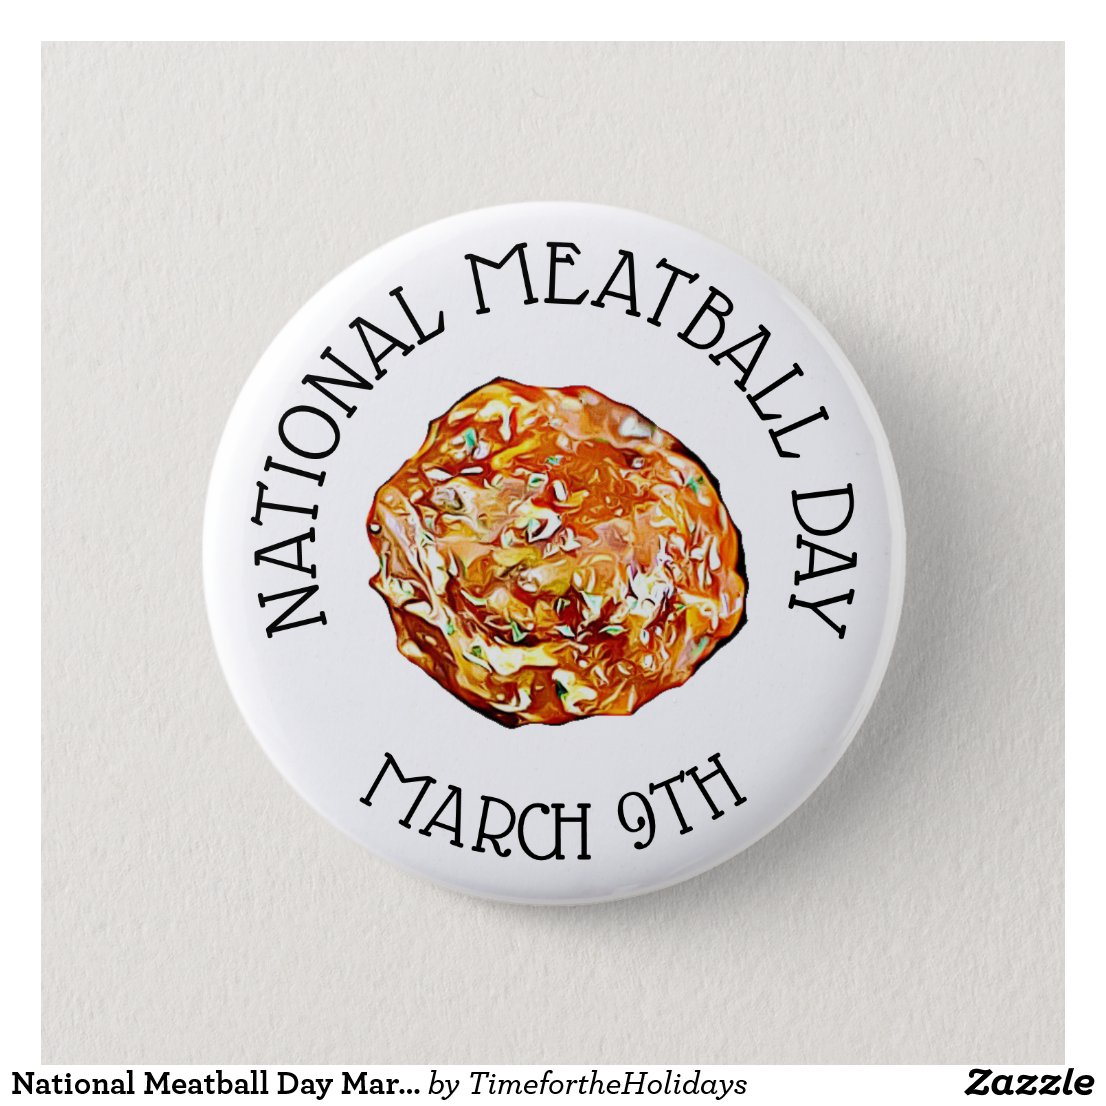 National Meatball Day March 9th Button